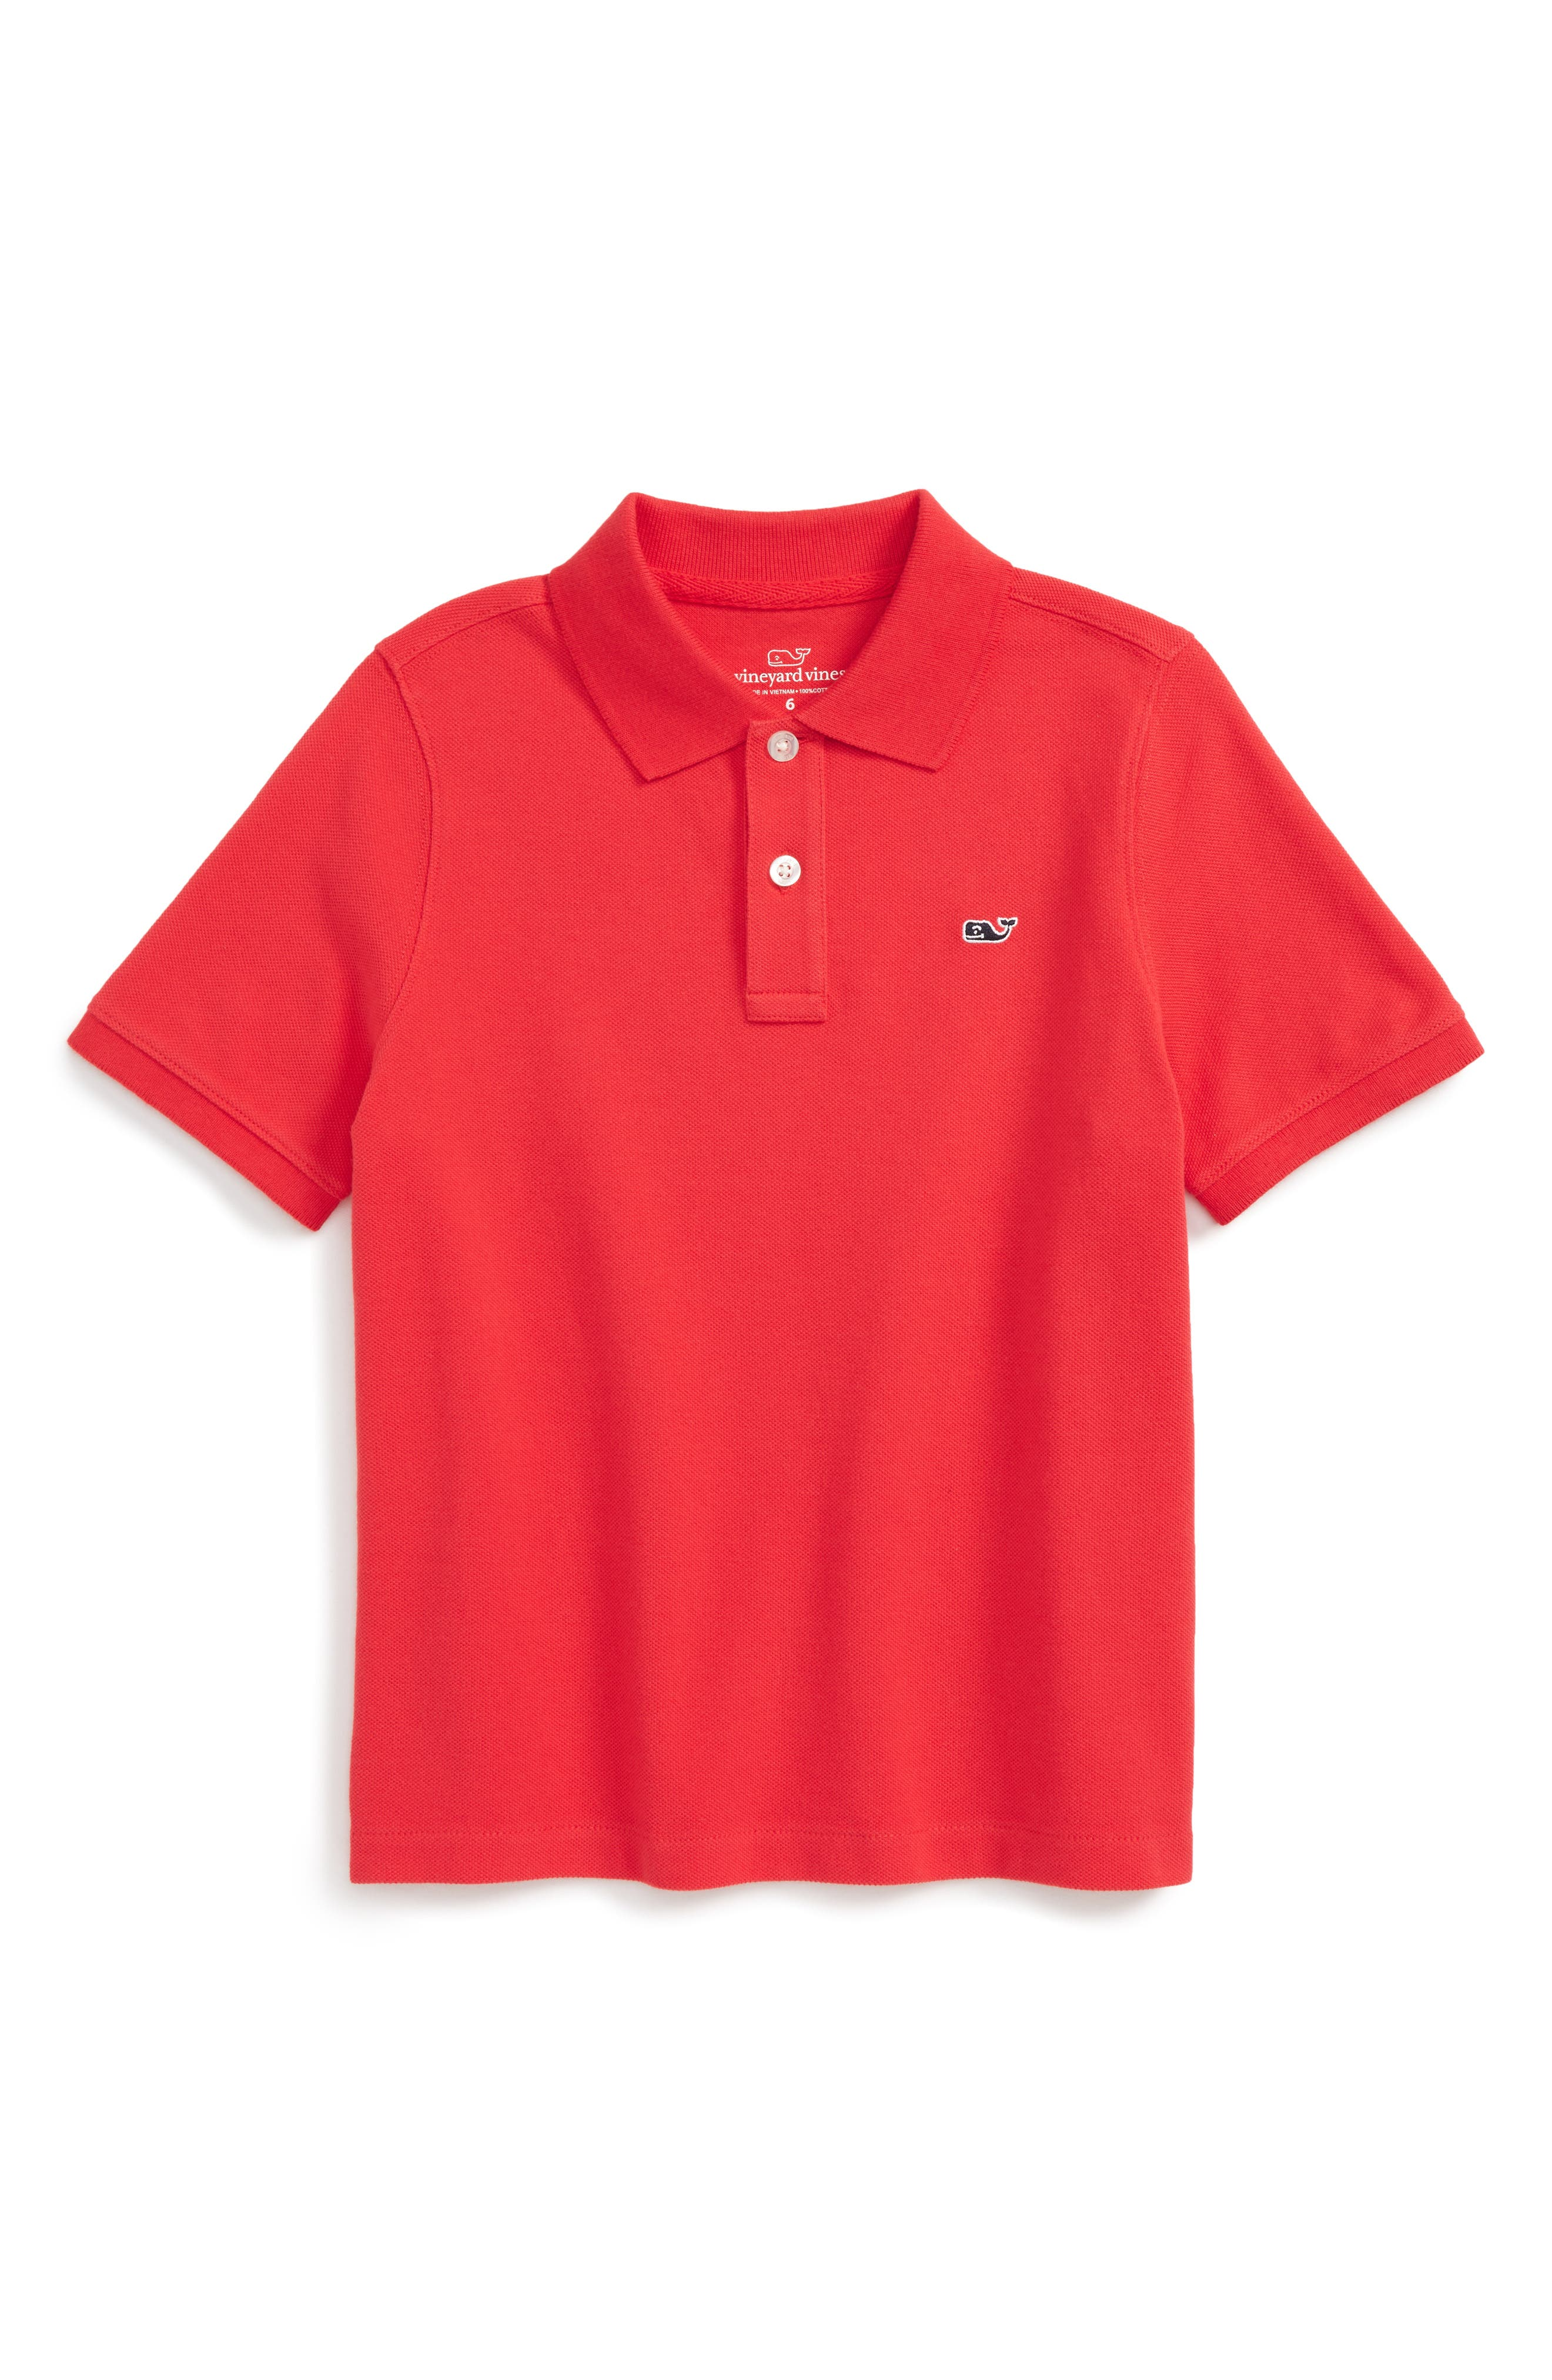 Vineyard Vines 'Classic' Piqué Cotton Polo (Big Boys)